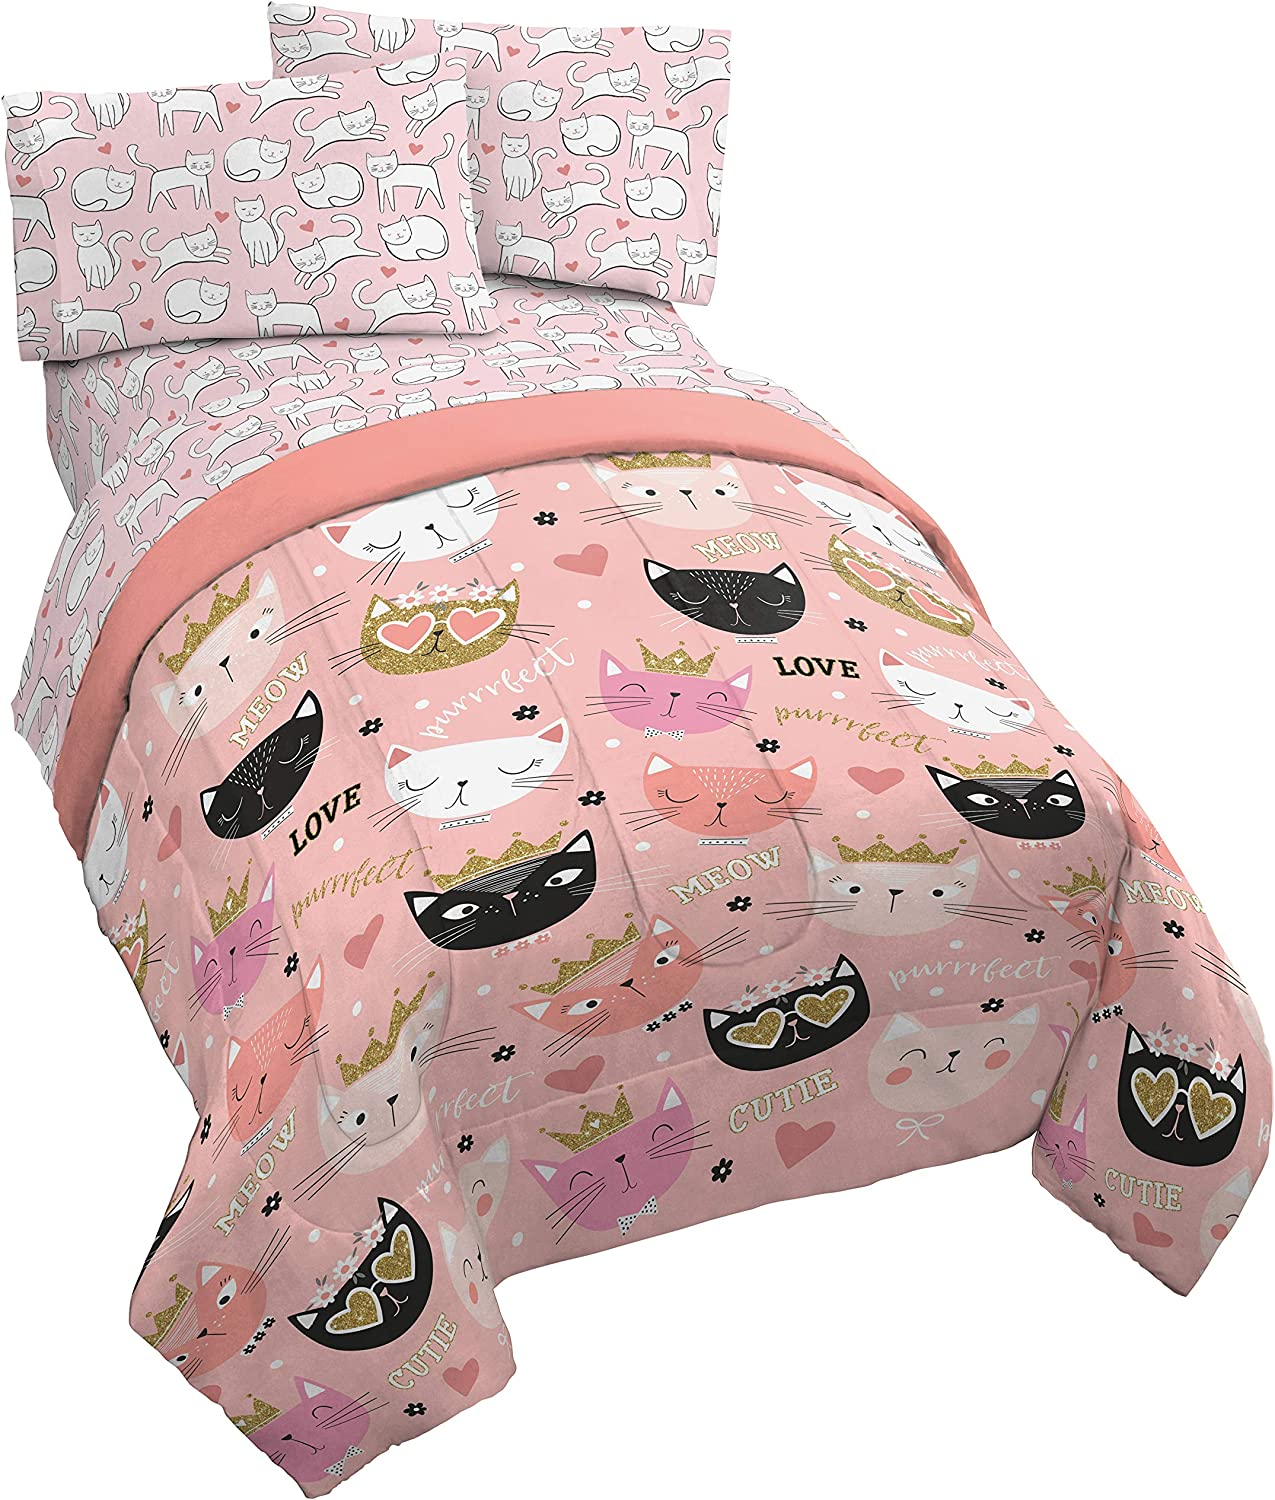 Jay Franco Purrrfect 5 Piece Full Bed Set - Includes Reversible Comforter & Sheet Set - Bedding Features Cats - Super Soft Fade Resistant Microfiber